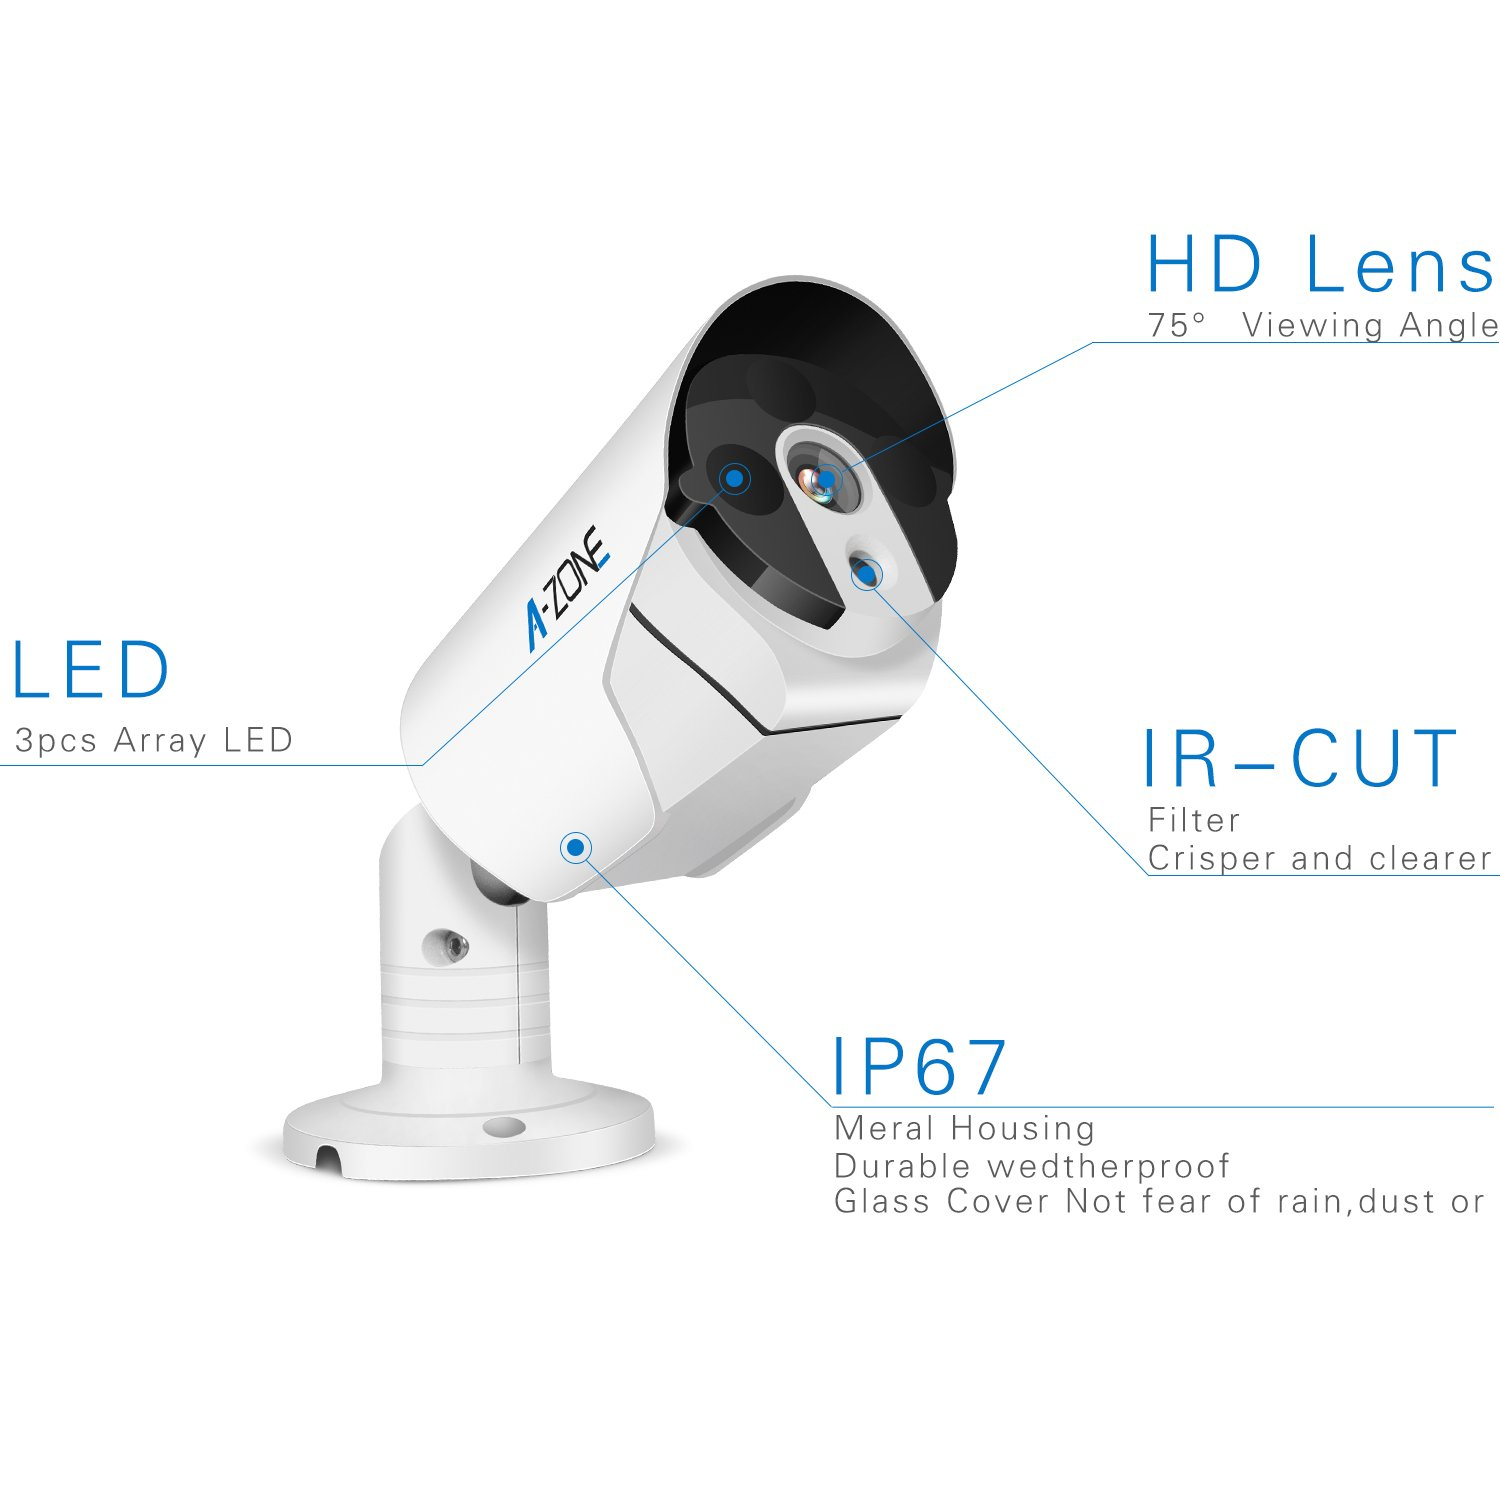 A-ZONE Security 4 Channel 1920P NVR HD 1080P IP PoE Security Camera System with 4 Outdoor//Indoor 3.6mm Fixed Lens 2.0 Megapixel 1080P Cameras Free Remote View 1TB Hard Drive CCTV-Security Camera AZ-W-F5C440-N1 QR Code Easy Setup